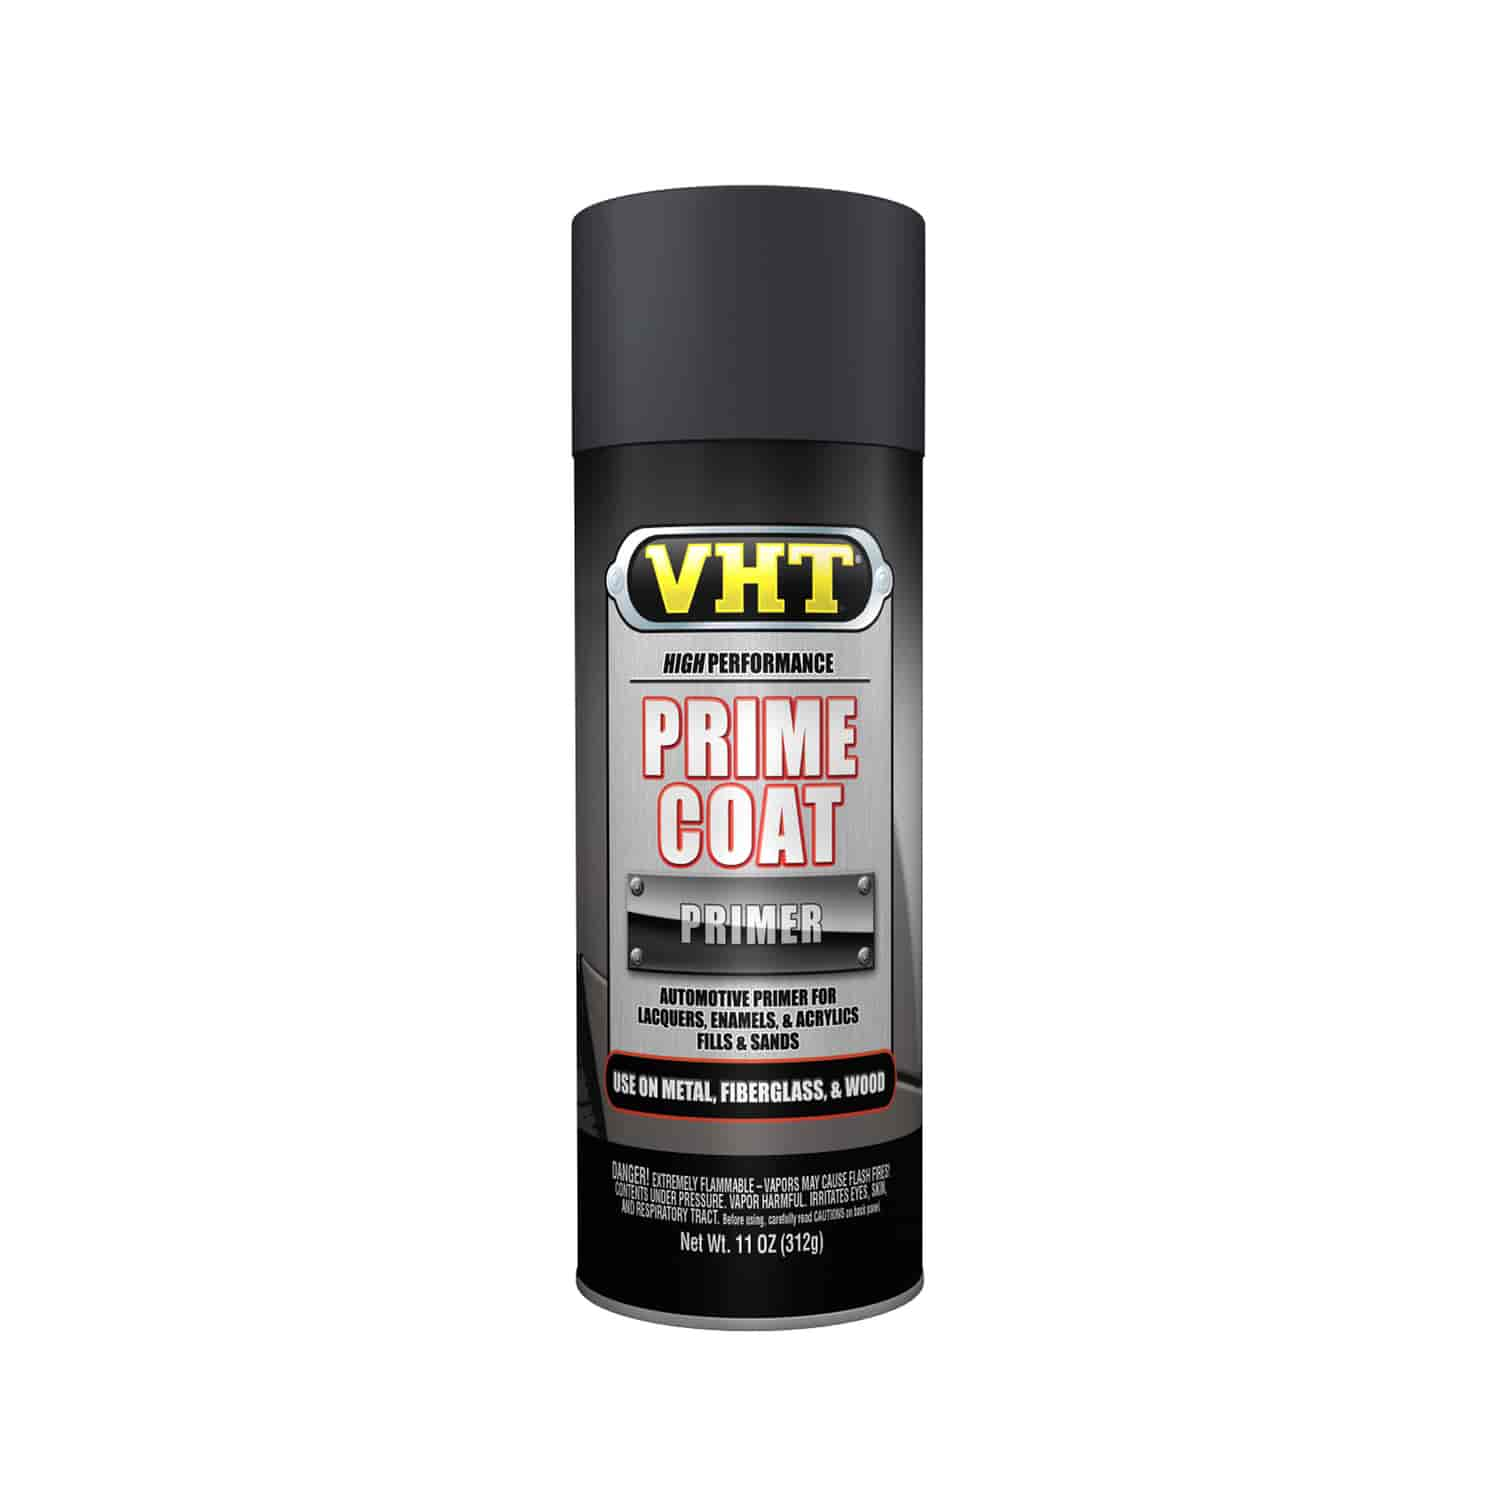 PJ1 SP302 - VHT Spray Primer